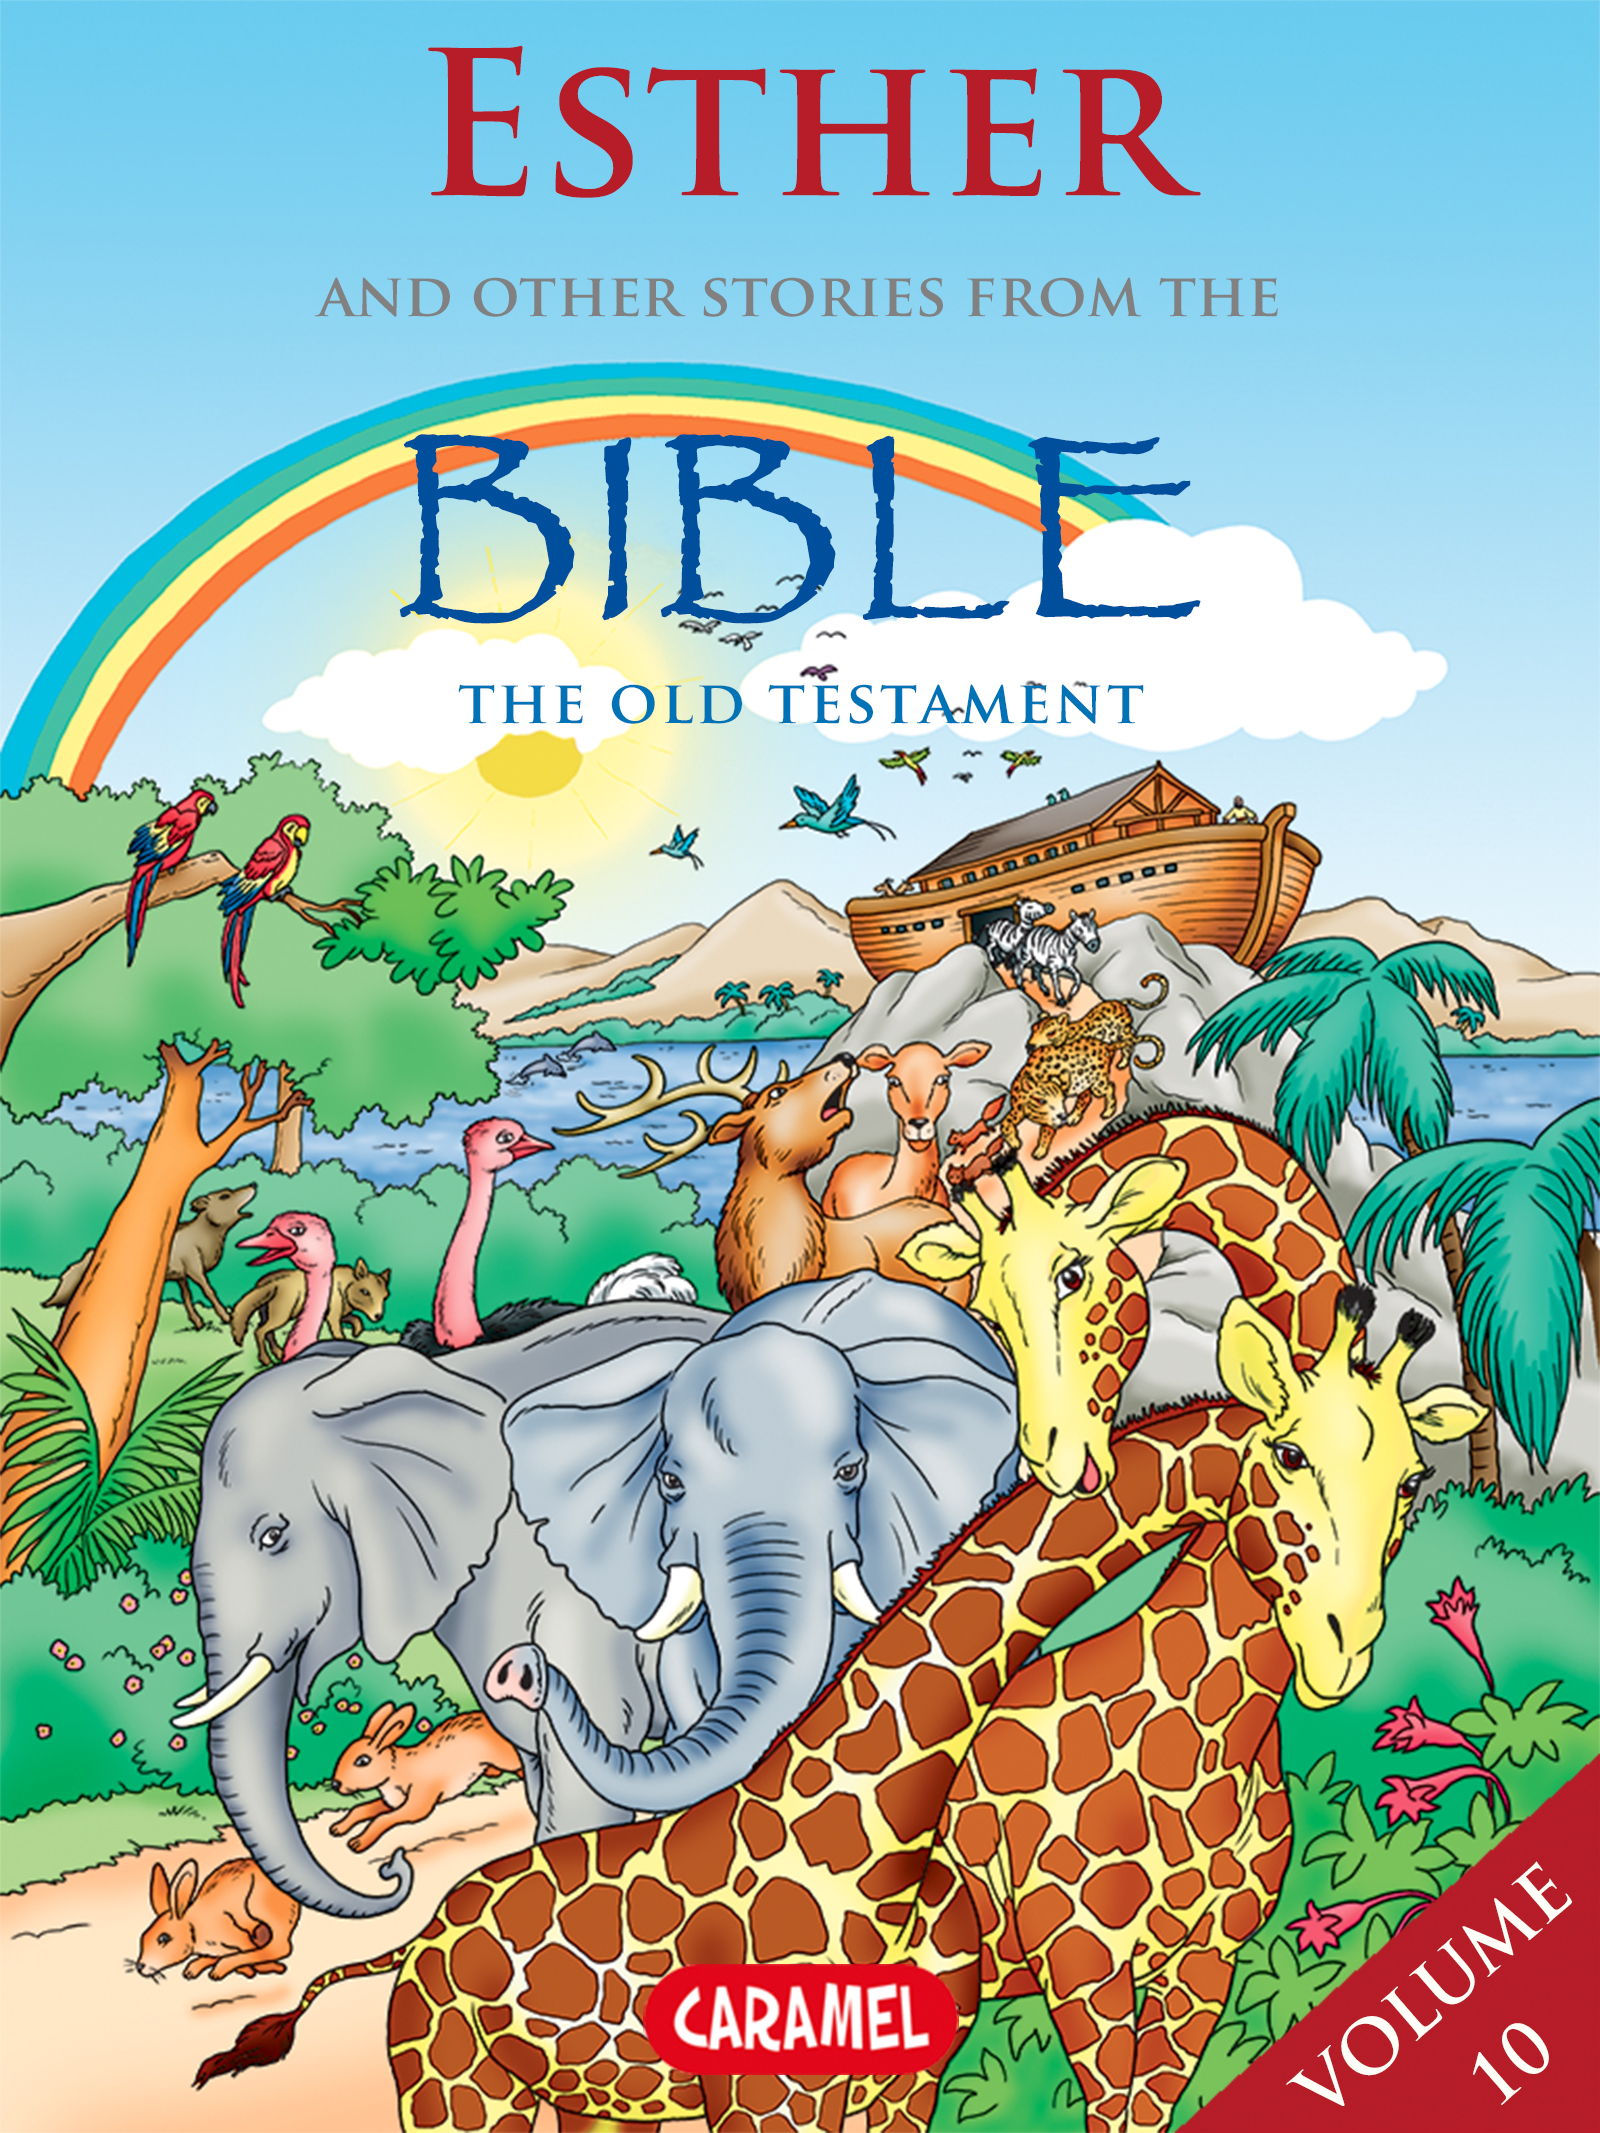 Esther and Other Stories From the Bible